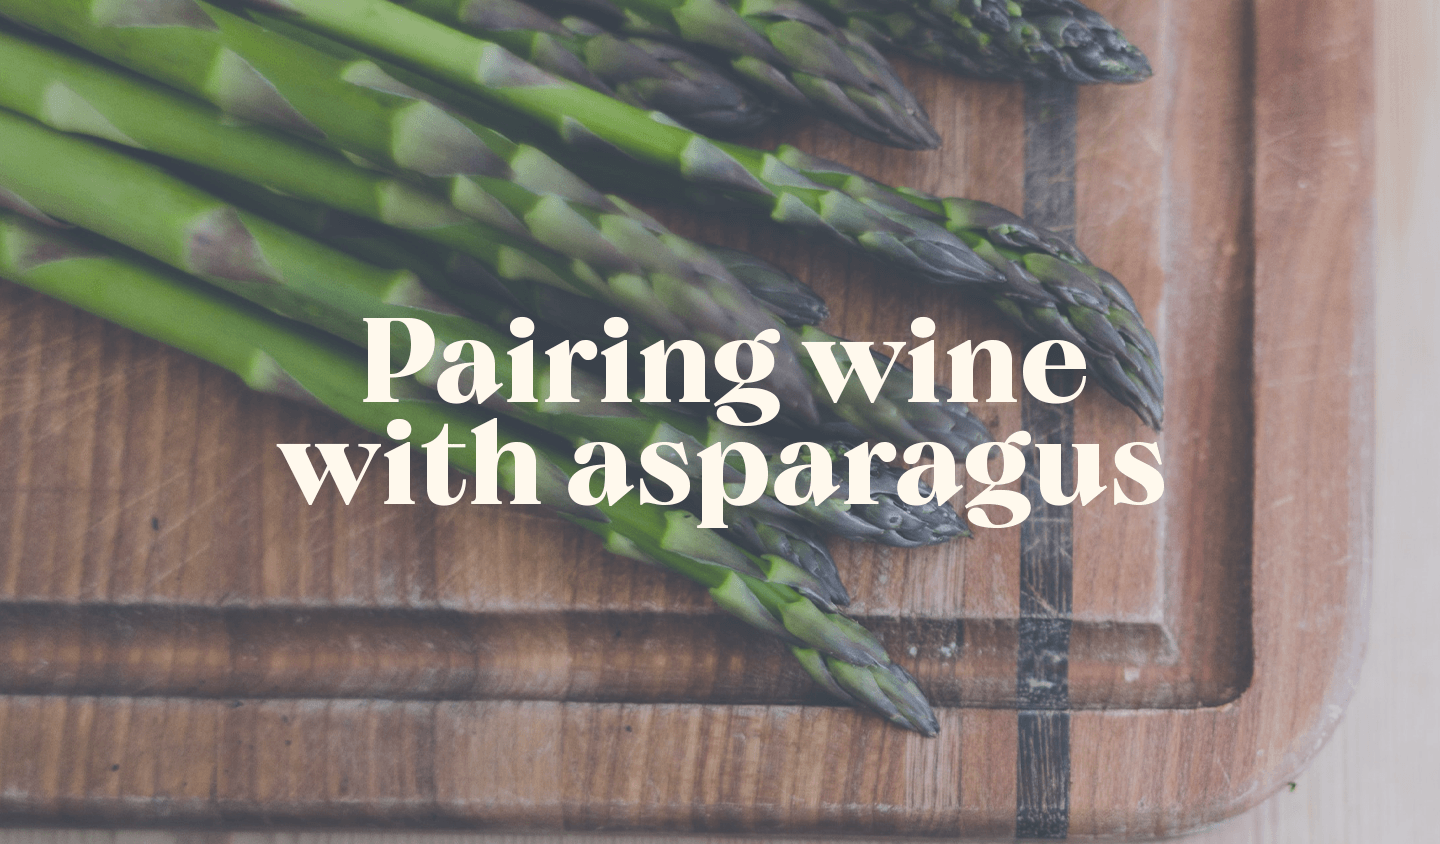 Pairing wine with asparagus